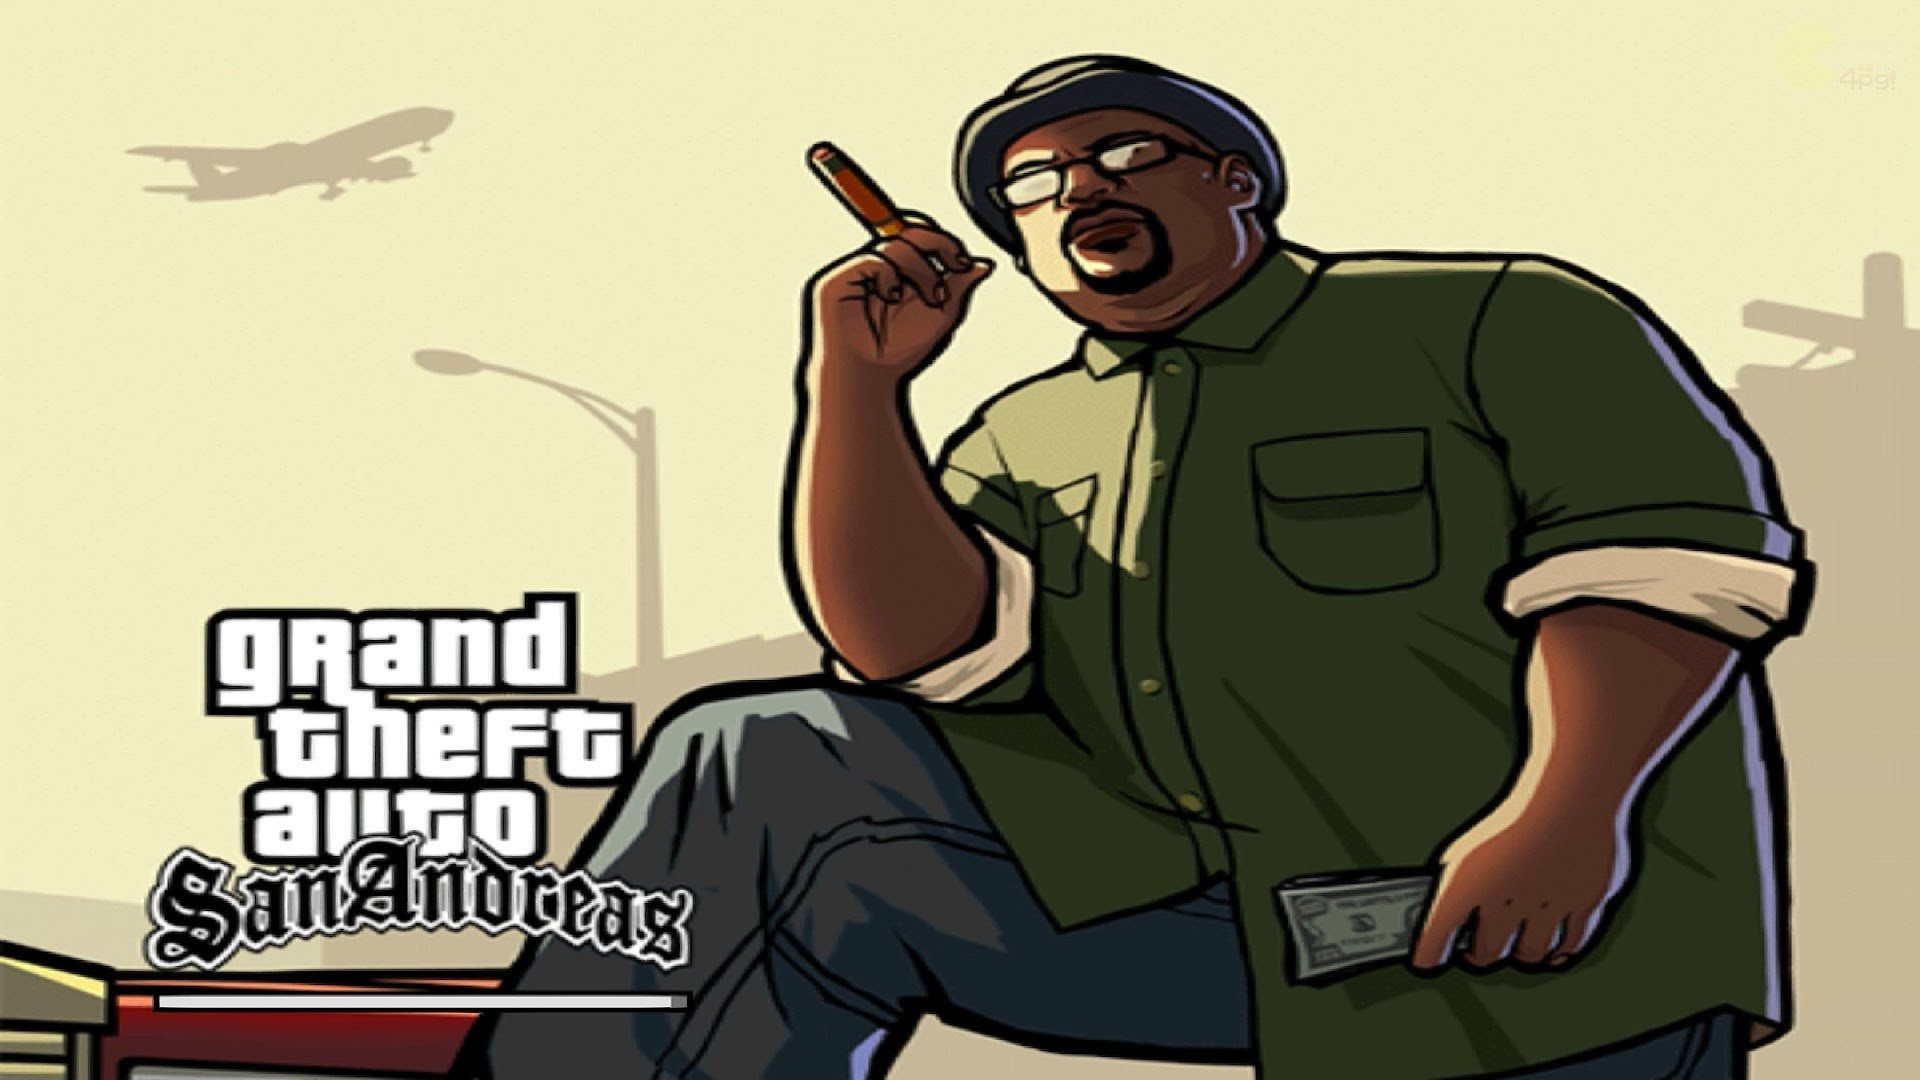 Grand Theft Auto San Andreas Wallpapers 55 Images